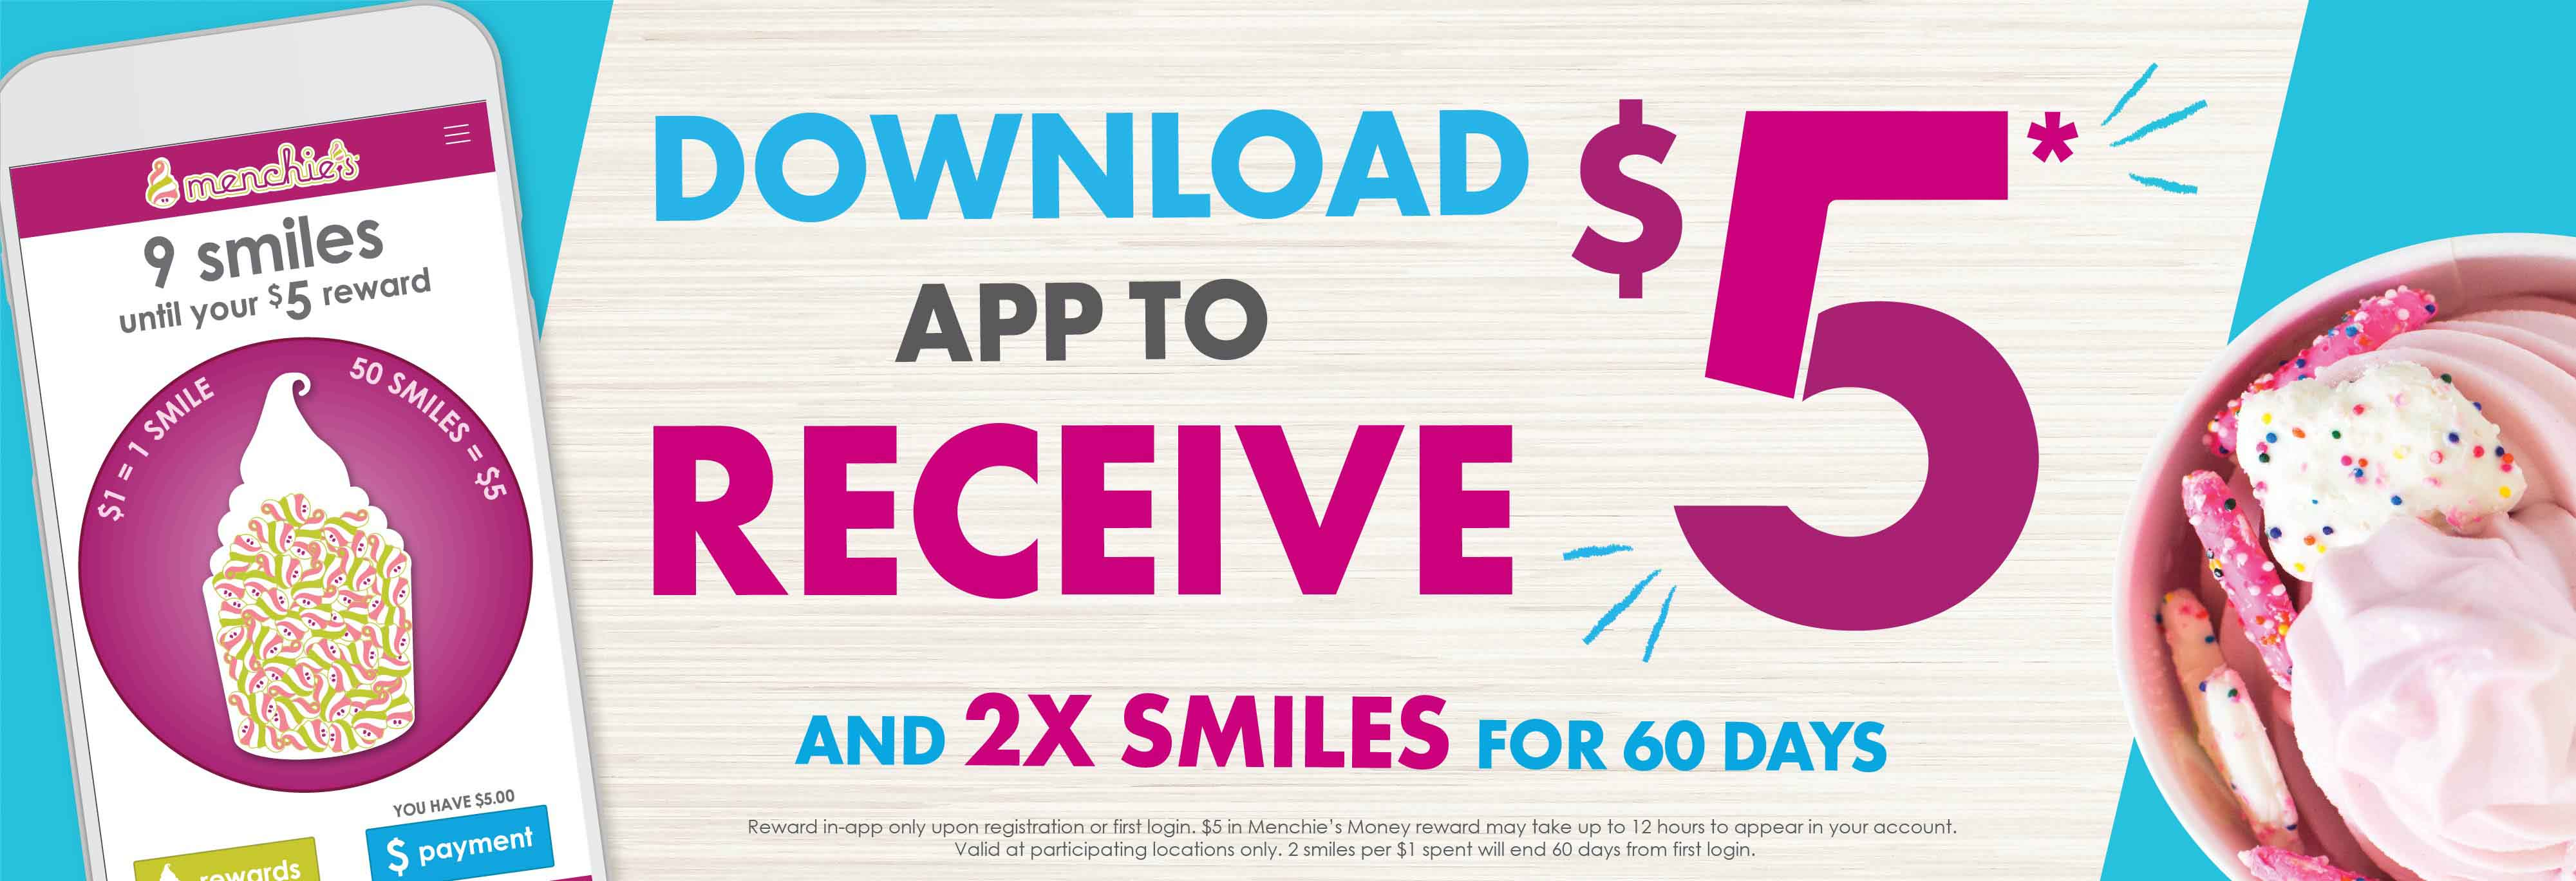 Download our new app today from the Apple App Store or Google Play Store and receive $5 in Menchie's Money and 60 days of double smiles! Now you can track your smiles, pay, order a cake, send gift cards, and more - right from your phone!